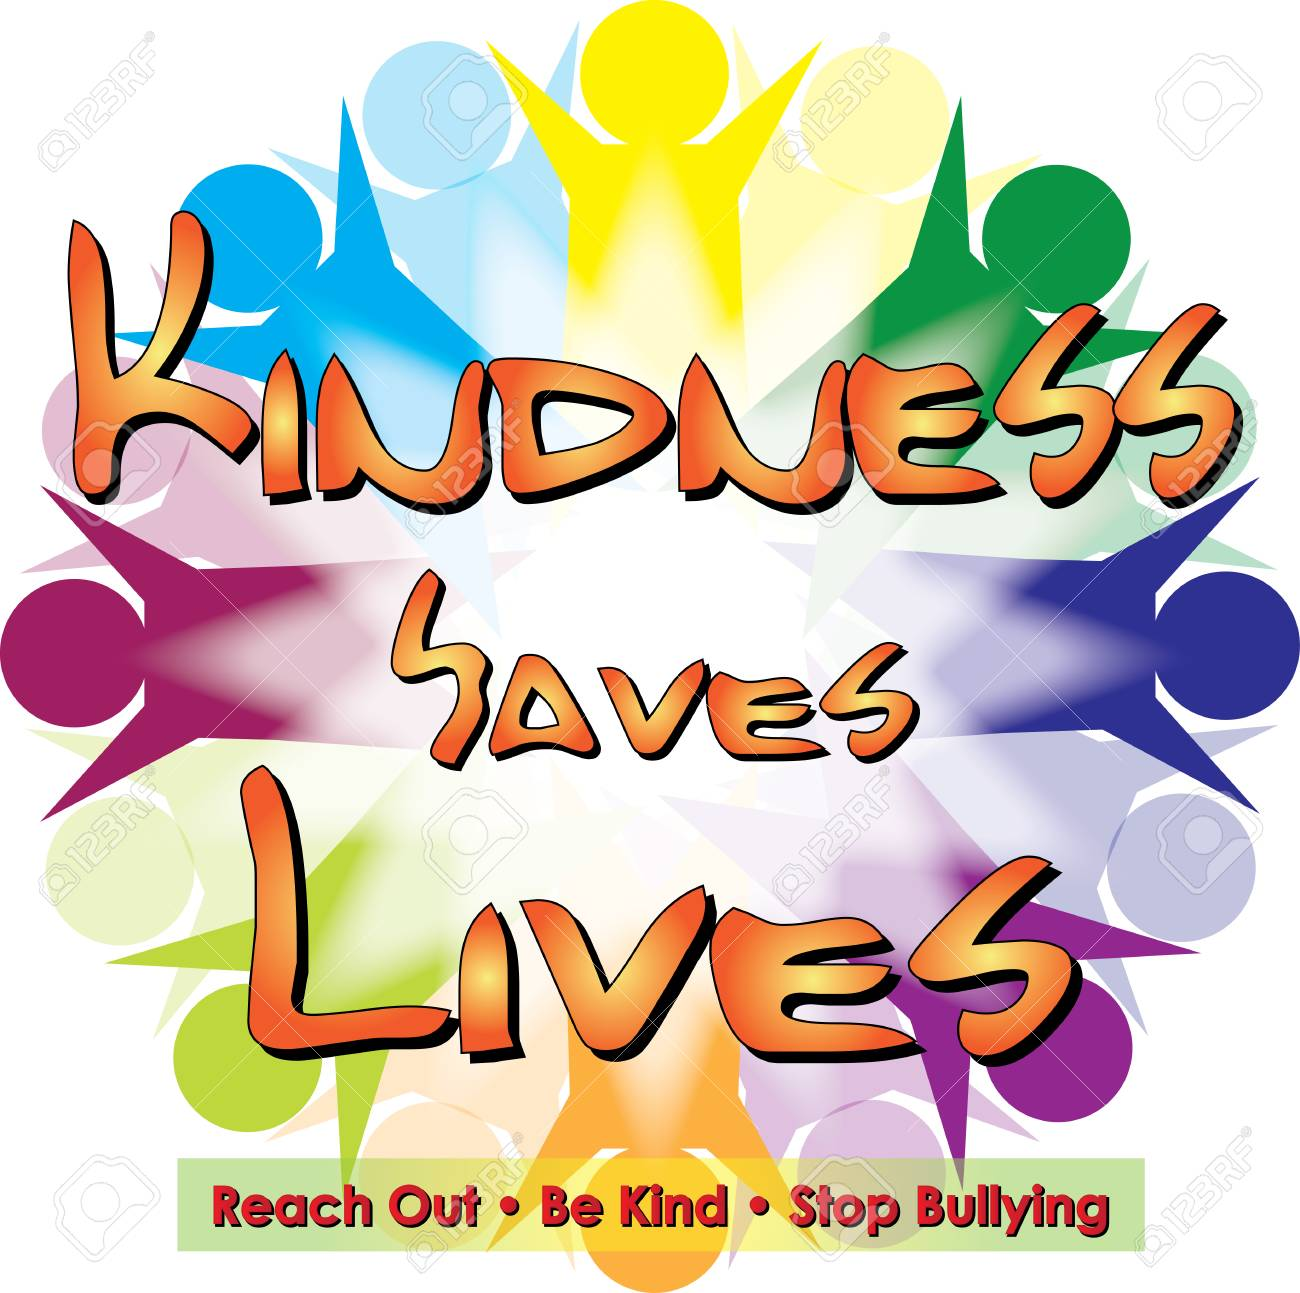 Kindness Saves Lives Logo isolated on colorful background. - 97902826